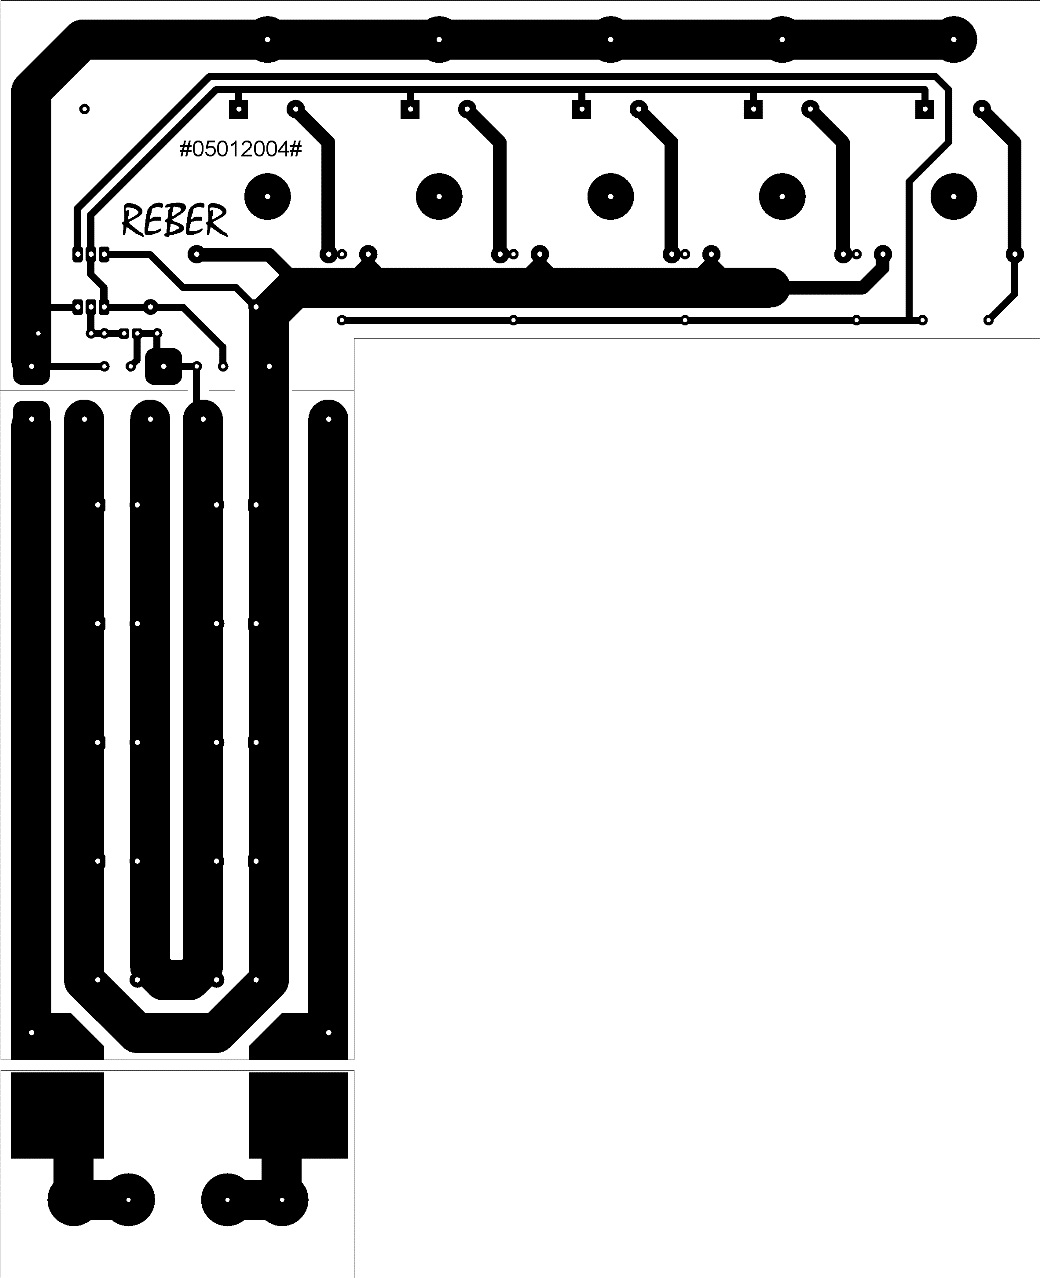 12v 20a Pcb Layout Design Power Supply Circuits Battery Chargher Using Lm317 Regulator Circuit Schematic